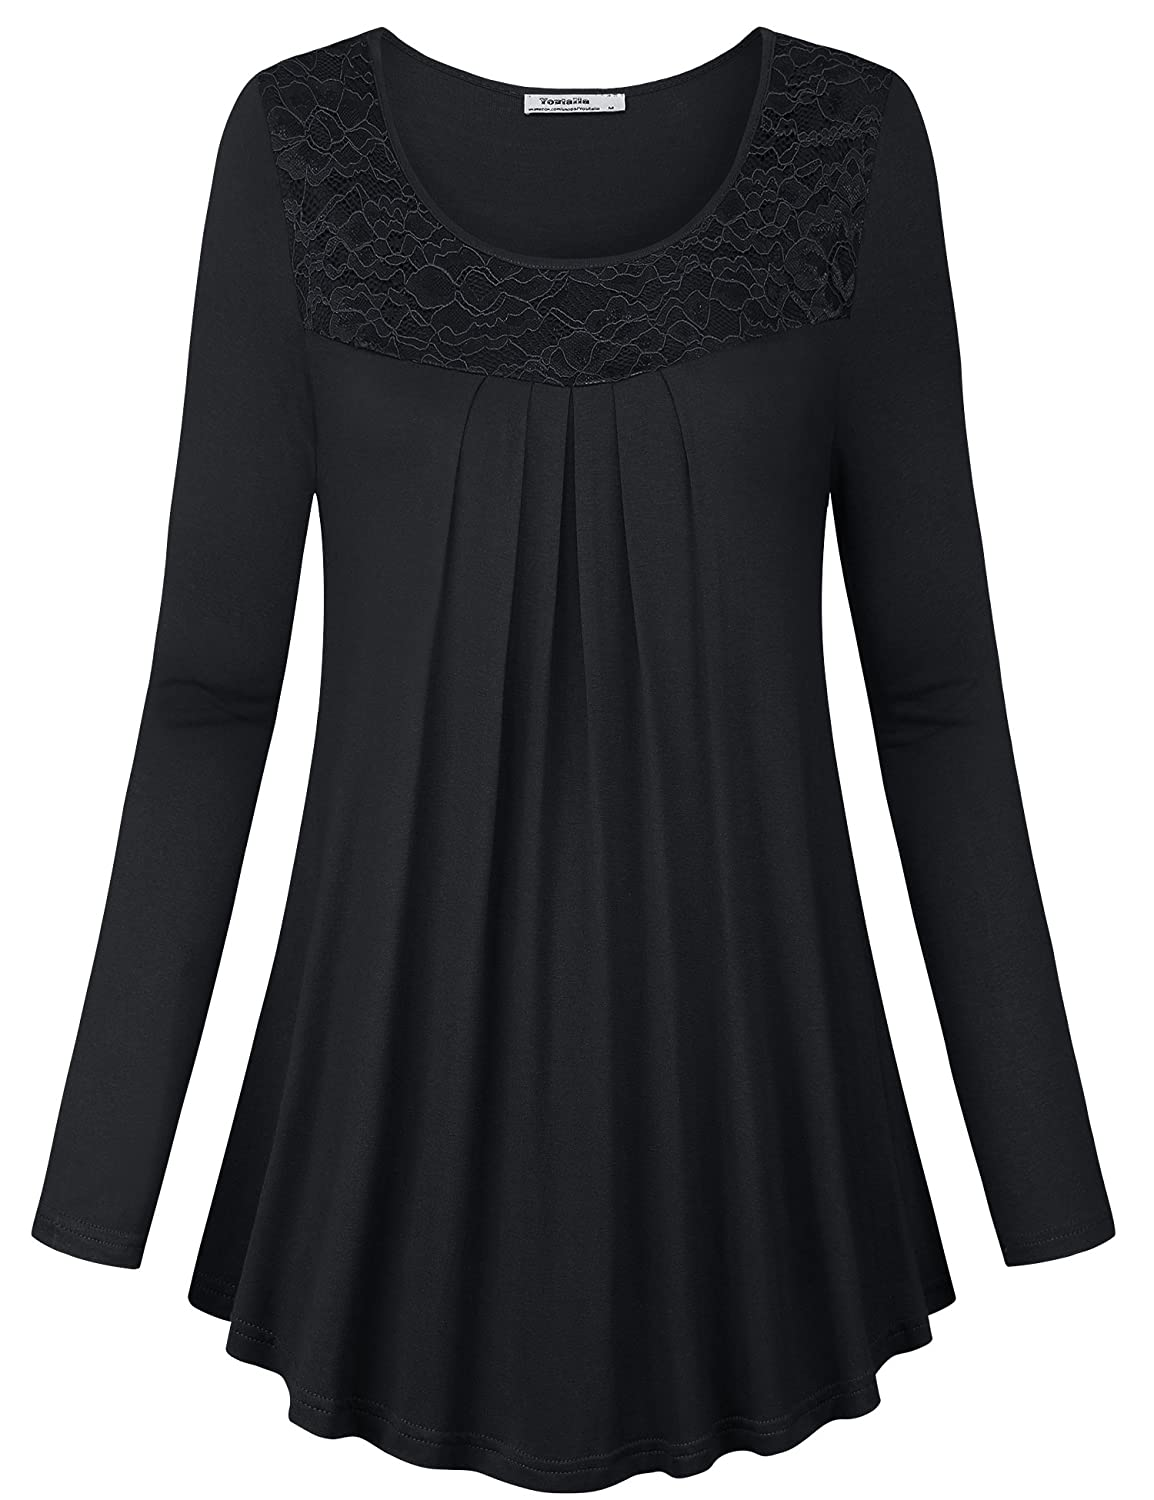 58ba603d89fb5c Features: Soft, elastic, breathable and comfortable knit fabric, Not see  through,Round Neck, Flared Hem A Line Pleated, Long Sleeve Blouse Top makes  you ...